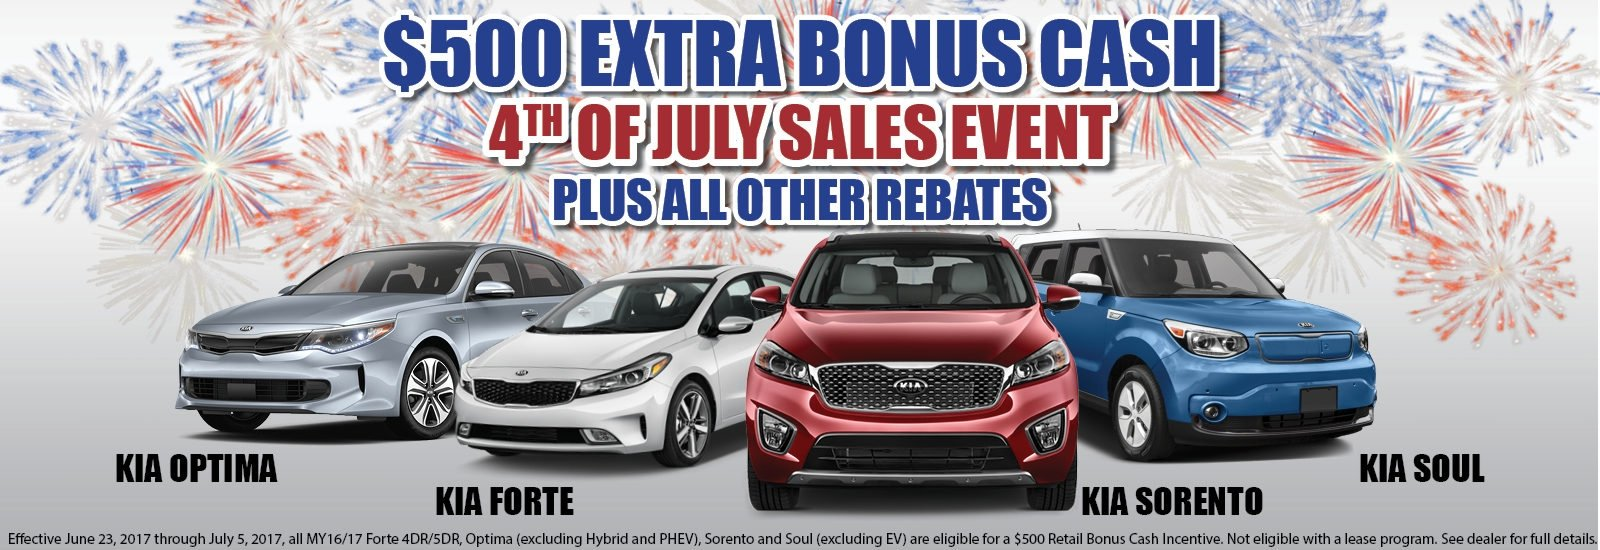 Kia 4th of July 500 updated